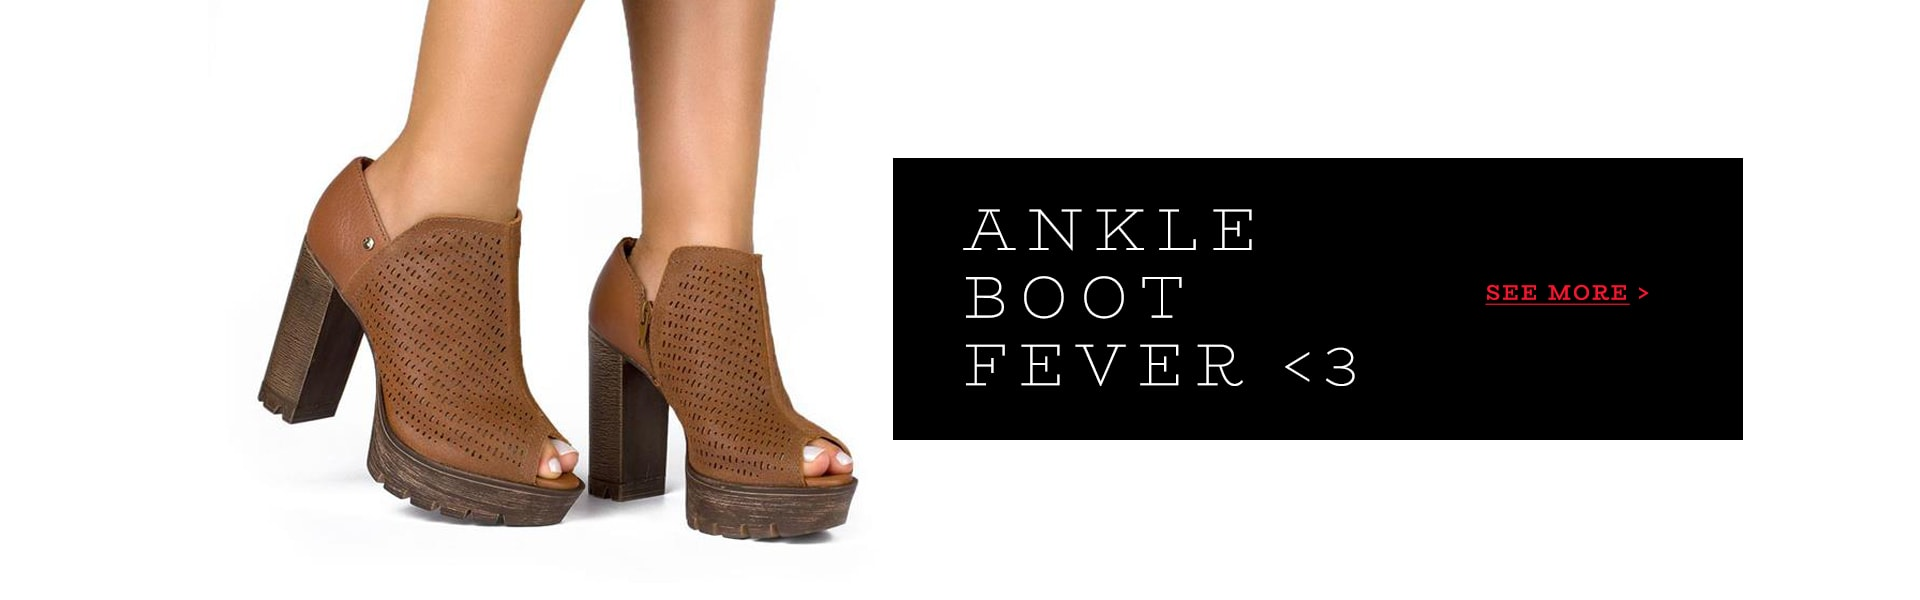 Ankle boot fever